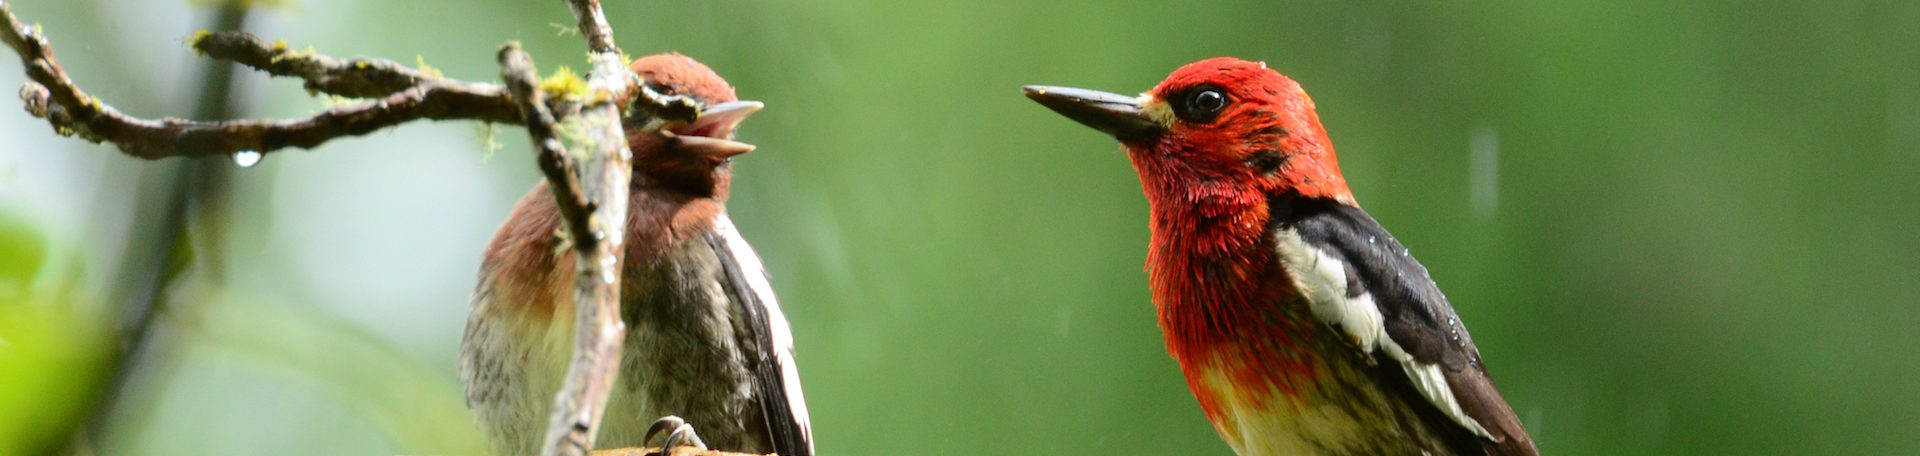 two small black and red birds facing each other on a tree branch